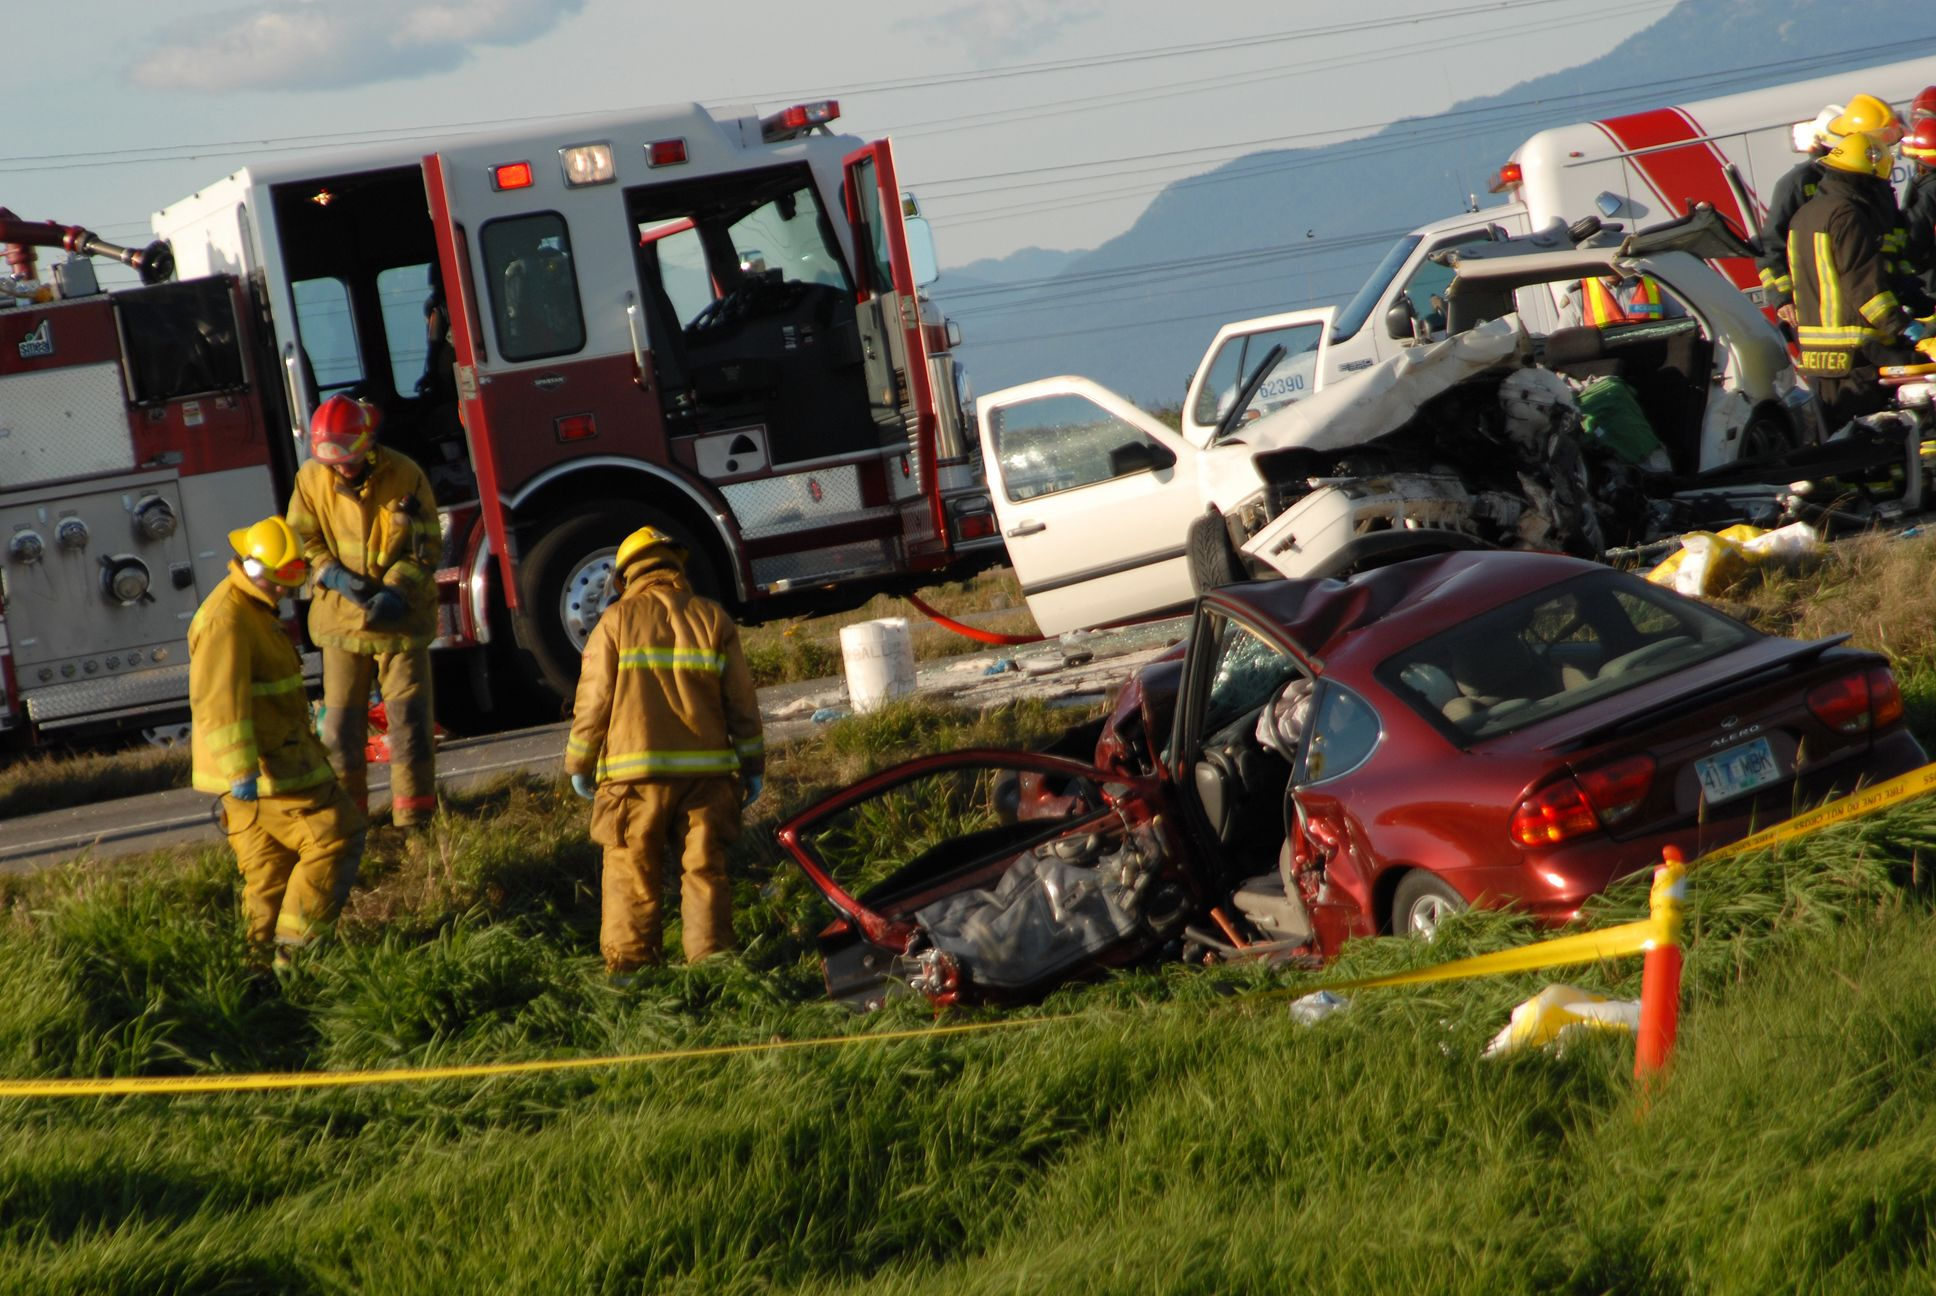 Firefighters responding to an auto accident on a rural road